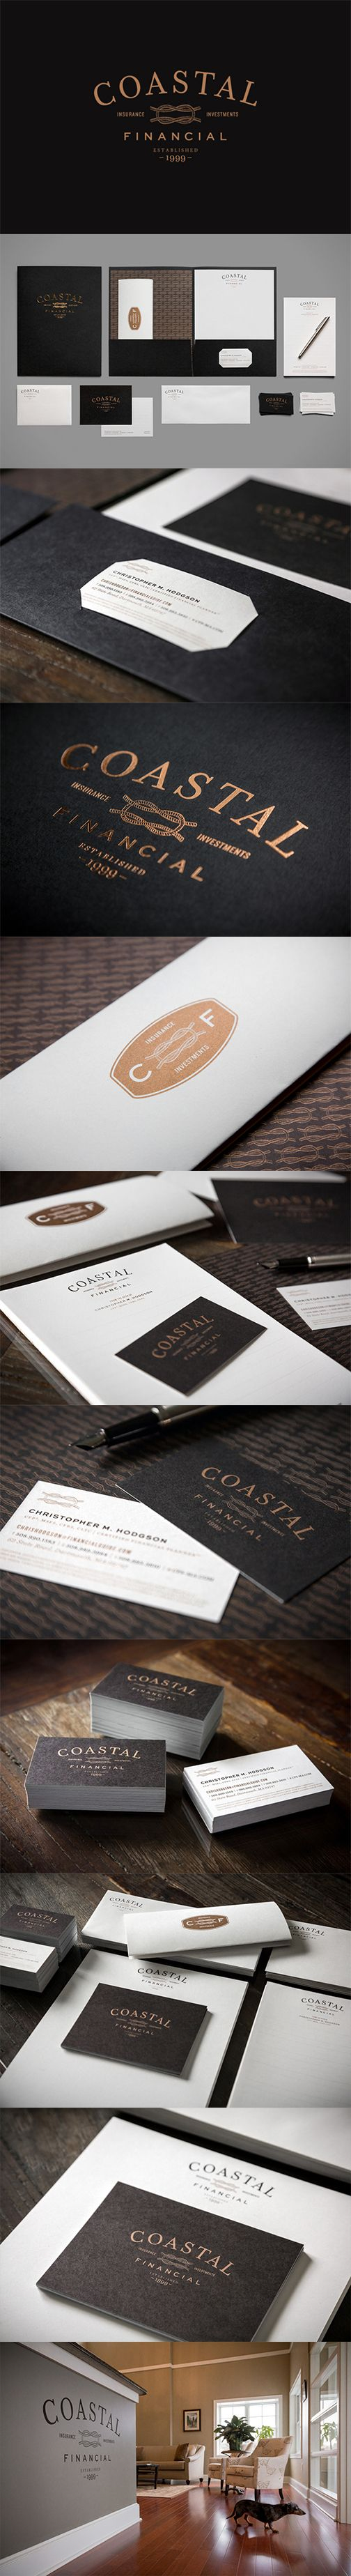 Traditional, timeless, sophisticated- I can trust this brand! BUT its too dark & black